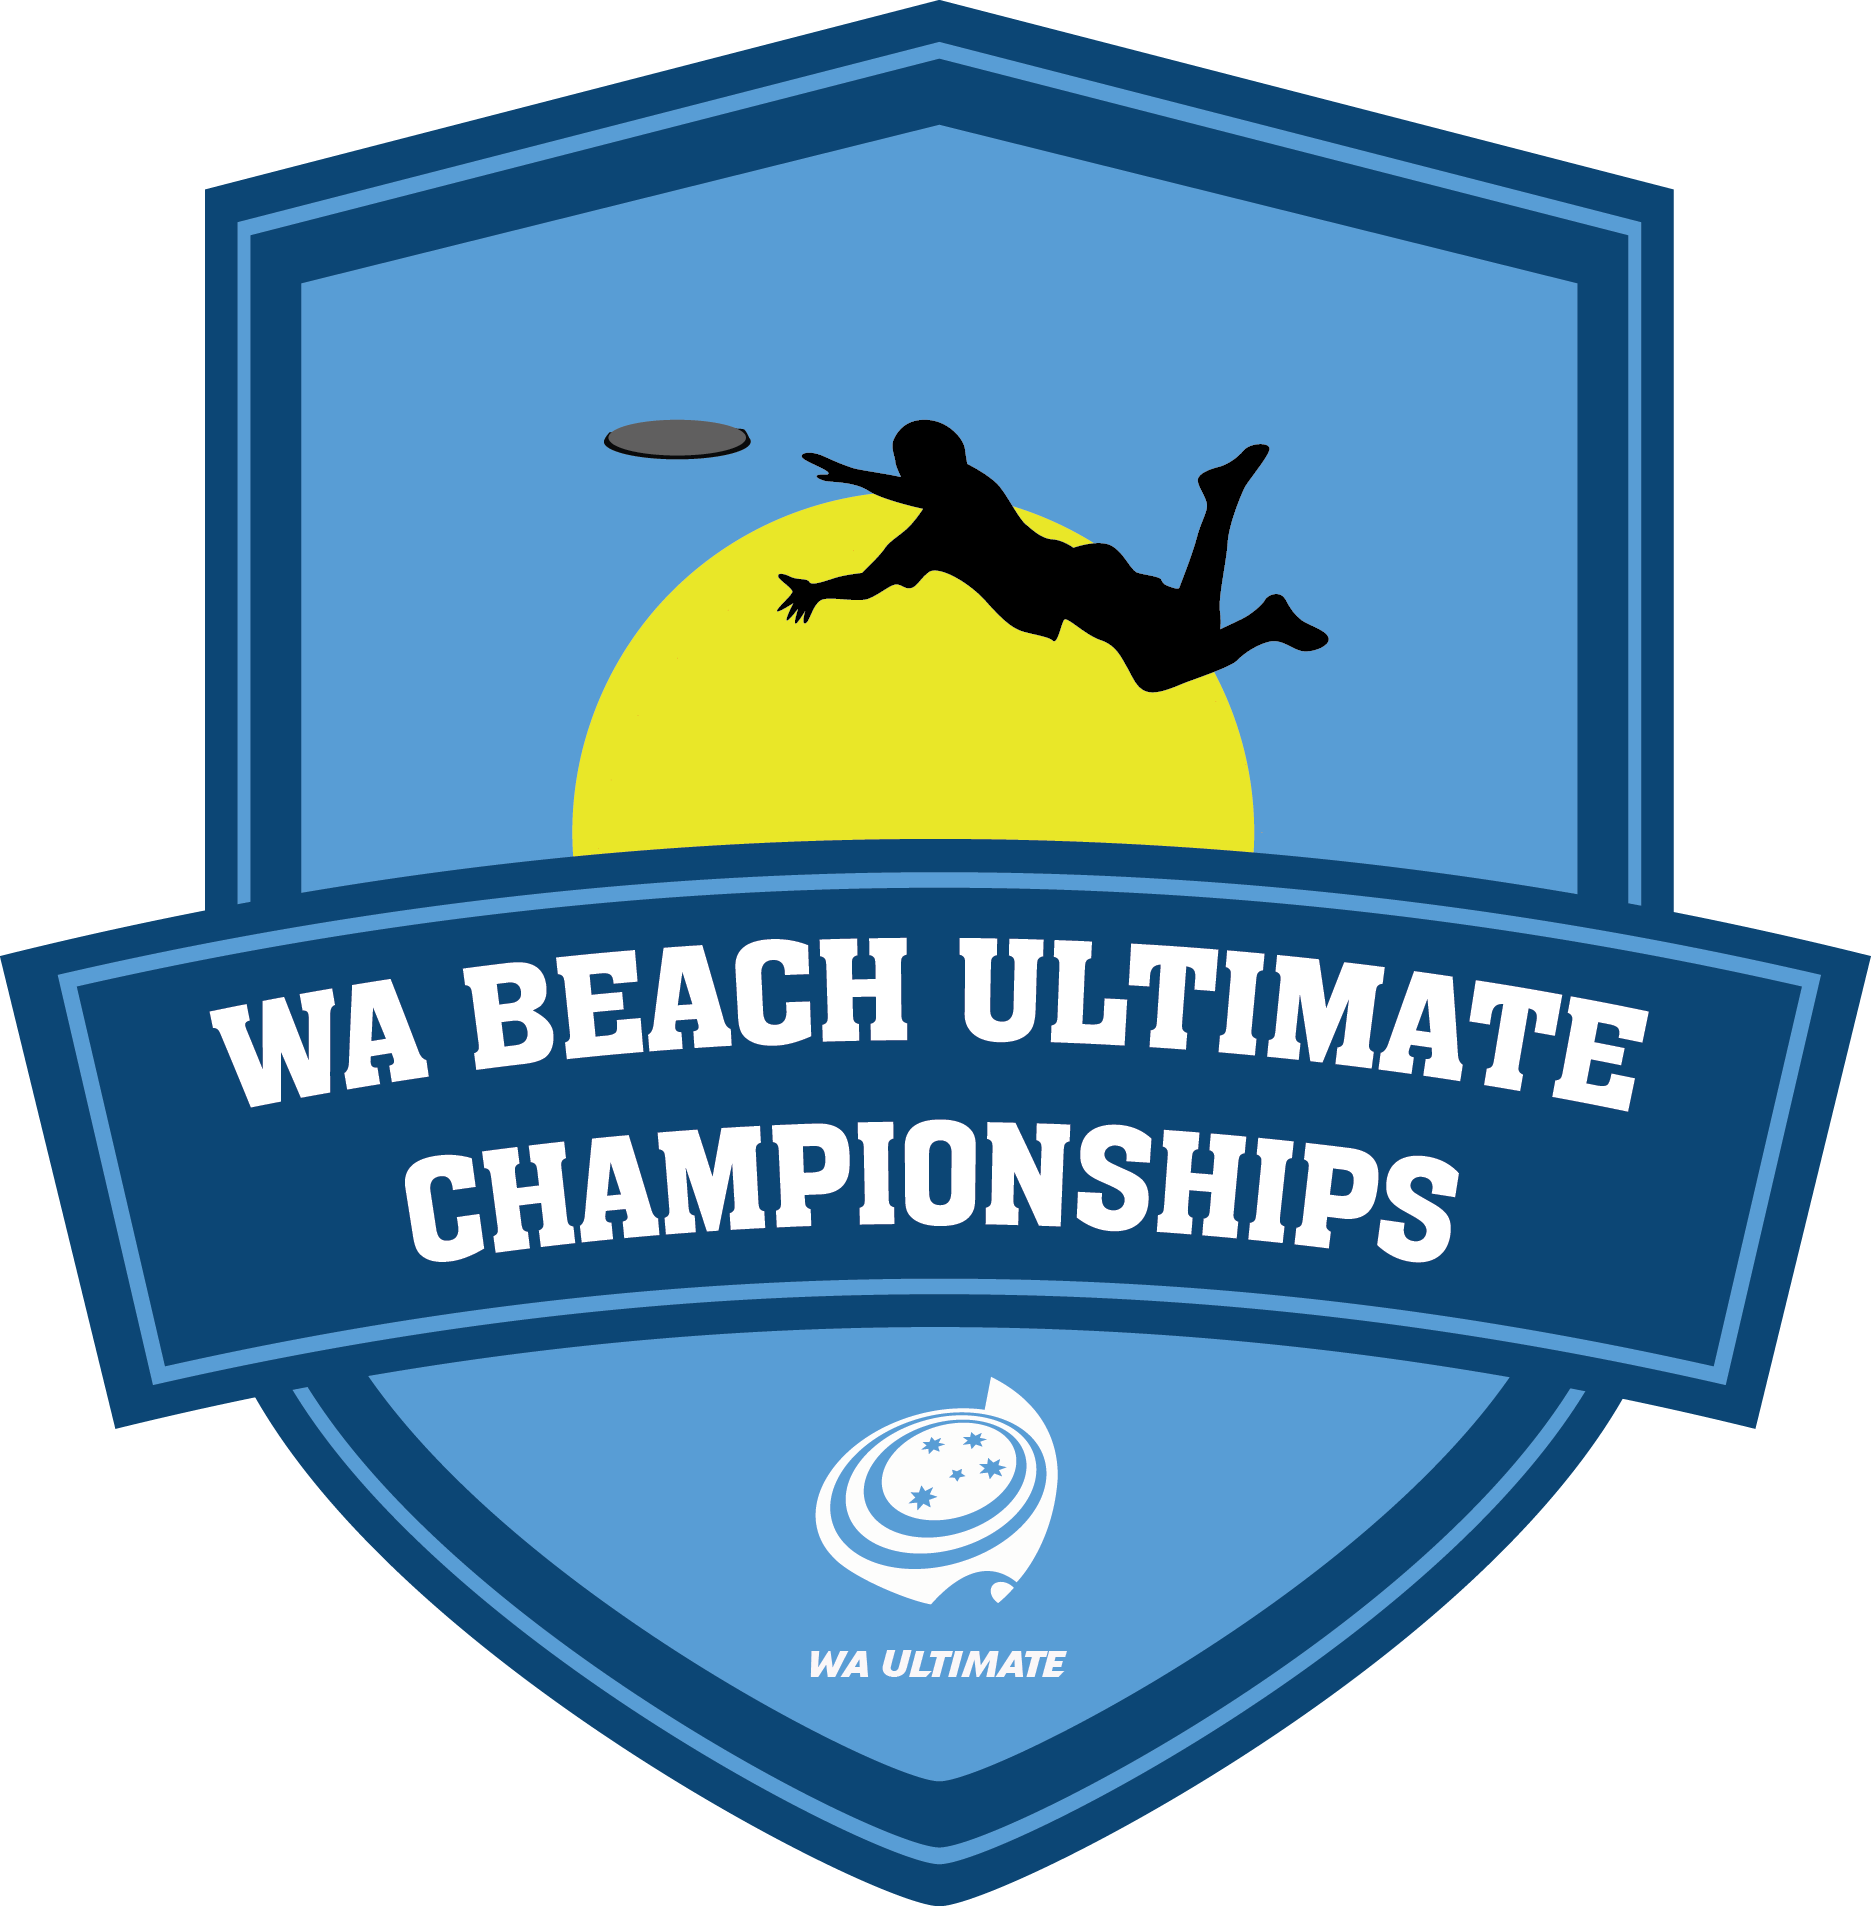 Beach Ultimate Championships Logo